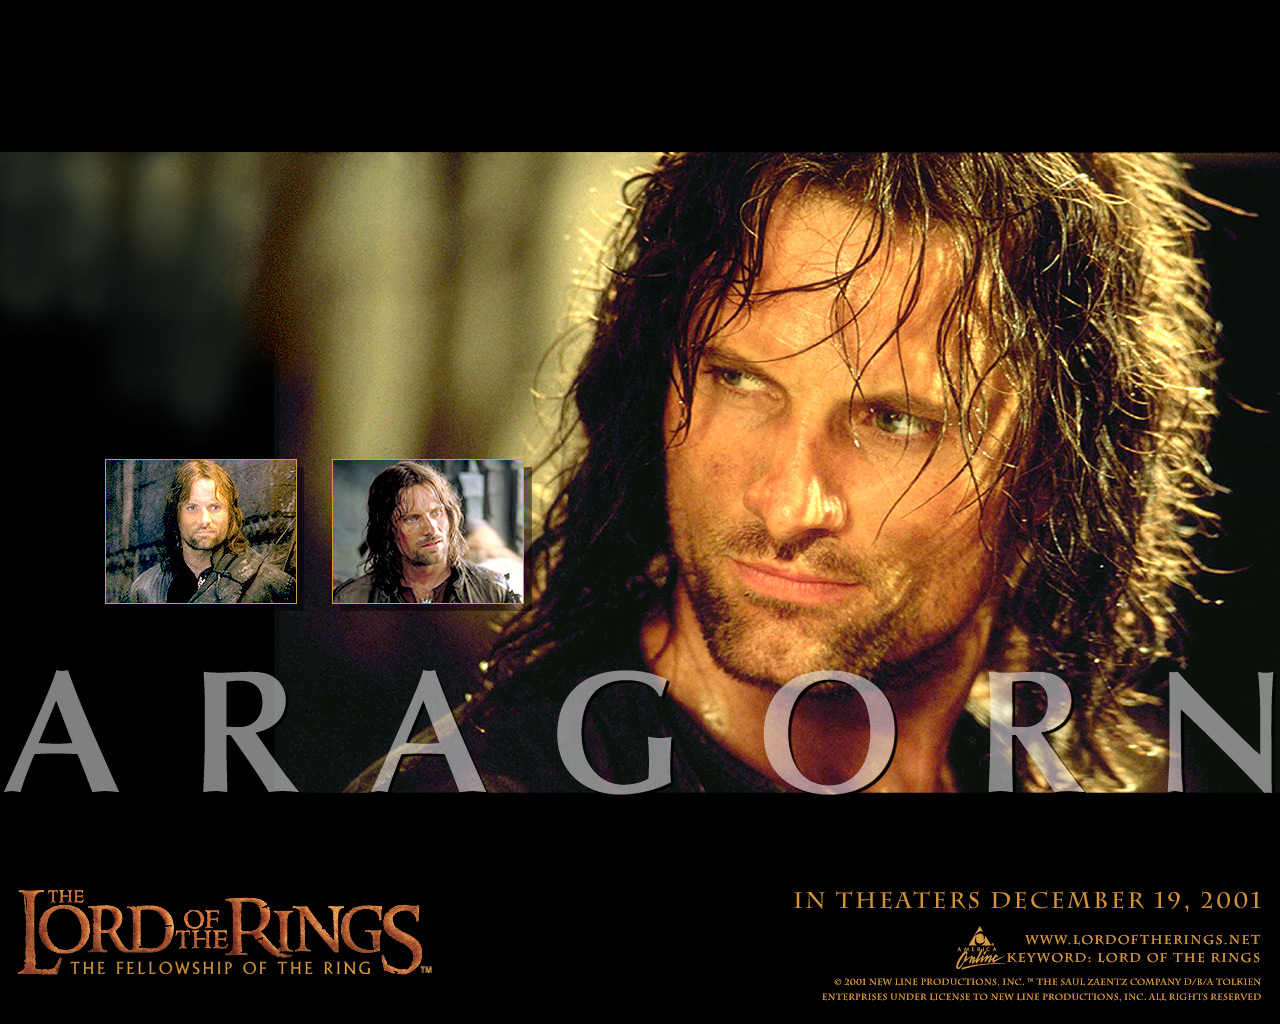 http://4.bp.blogspot.com/-P0PYt5Ifa-w/TtG6bmyquaI/AAAAAAAAJ8M/6bUzPwO2hNQ/s1600/Viggo_Mortensen_in_Lord_of_the_Rings%2B_The_Fellowship_of_the_Ring_Wallpaper_6_1280.jpg